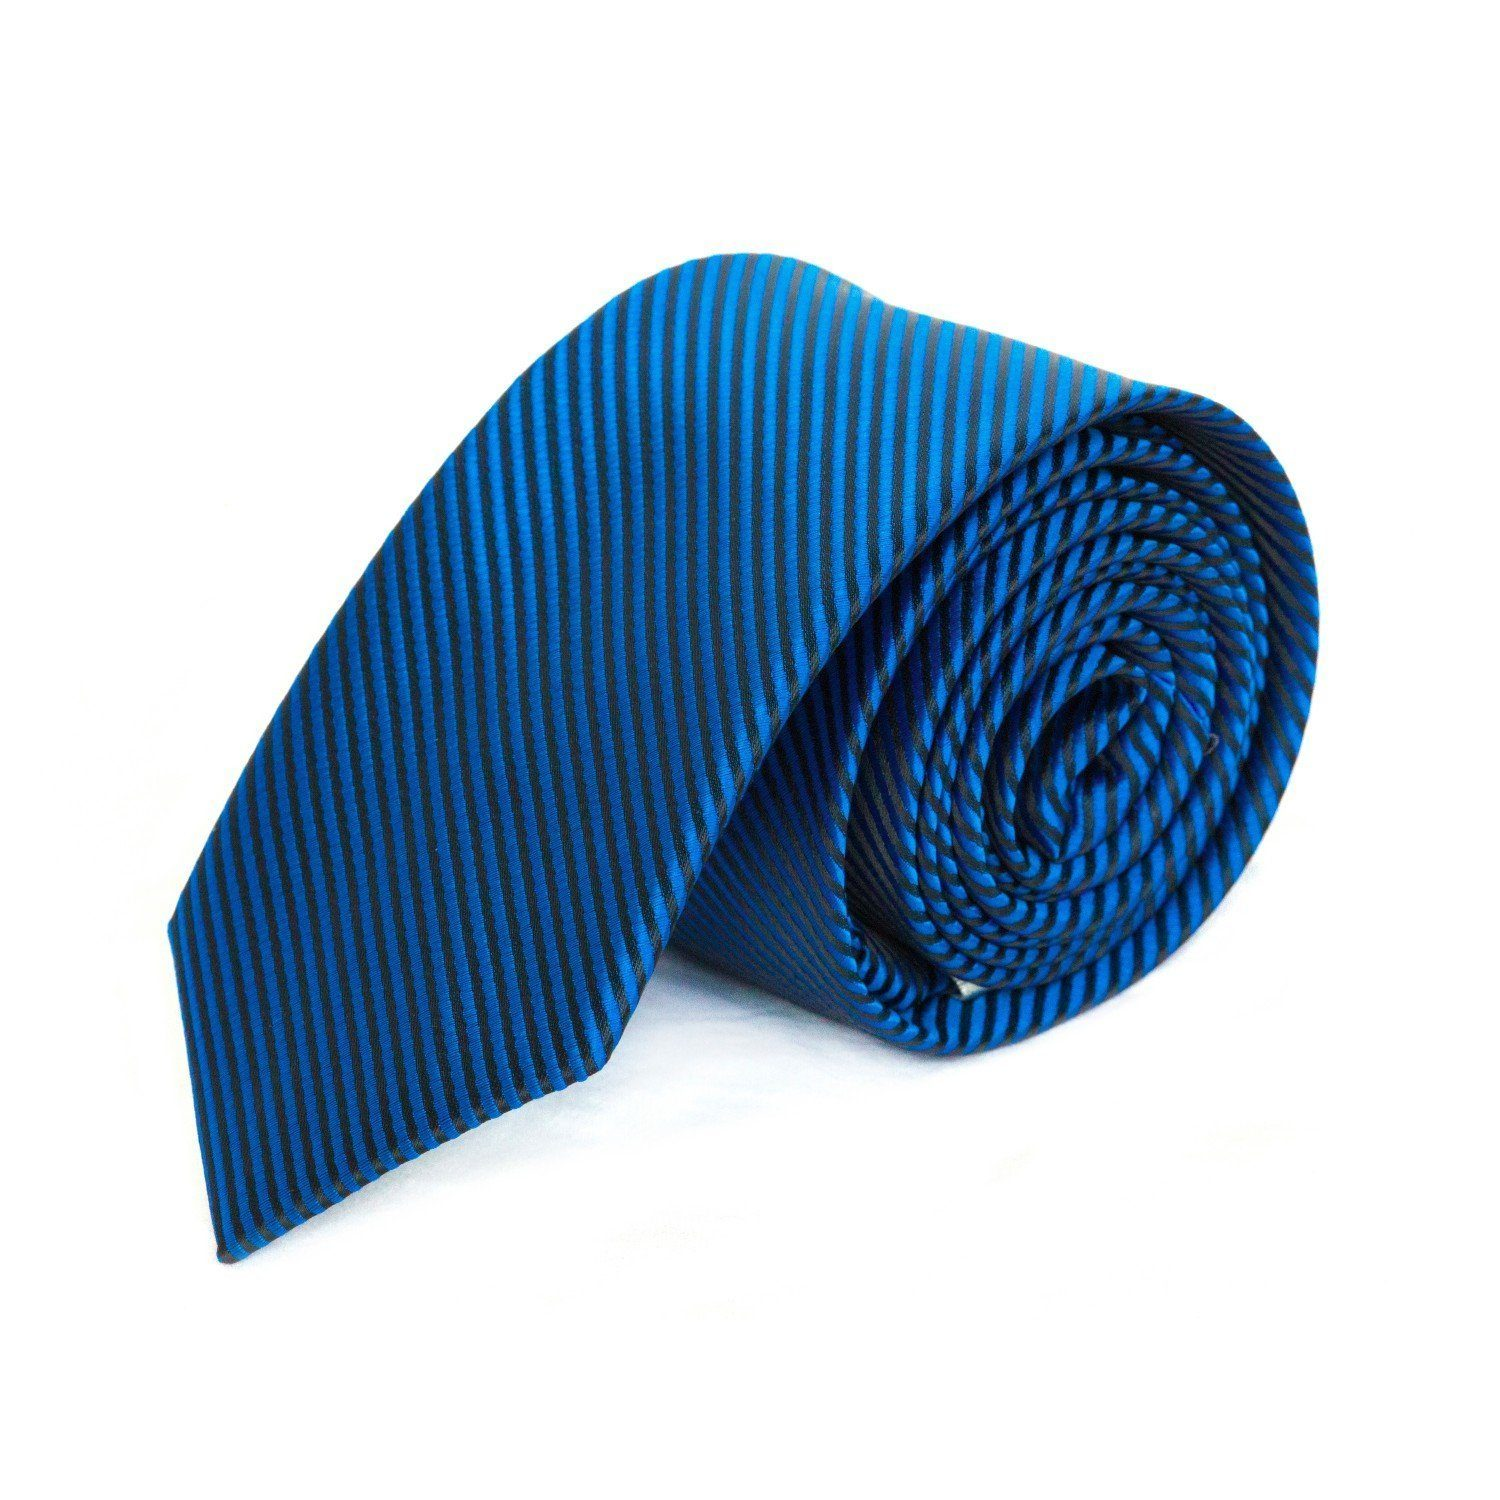 Electric Blue and Black Stripe MF Tie Ties Cuffed.com.au